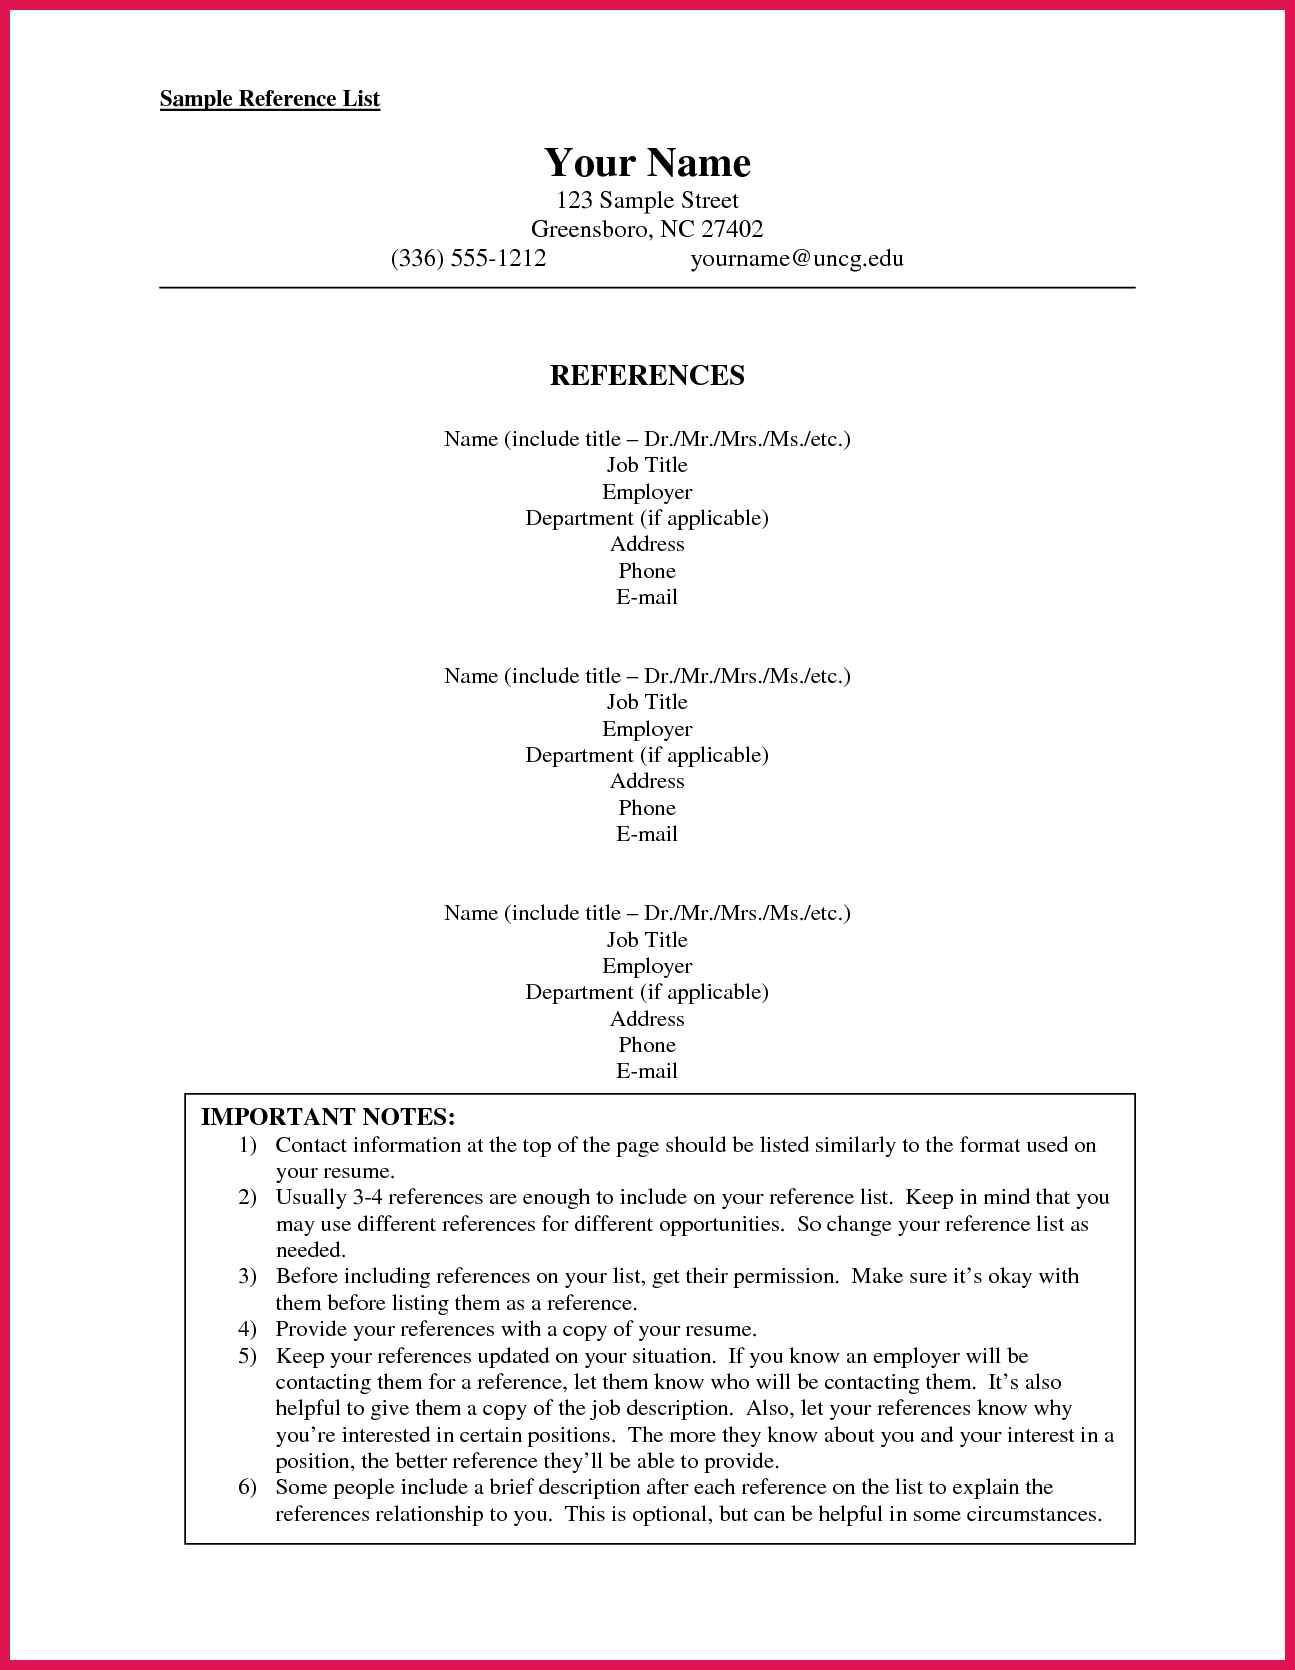 002 Dreaded List Of Reference Template High Resolution  Employment Format Professional FreeFull